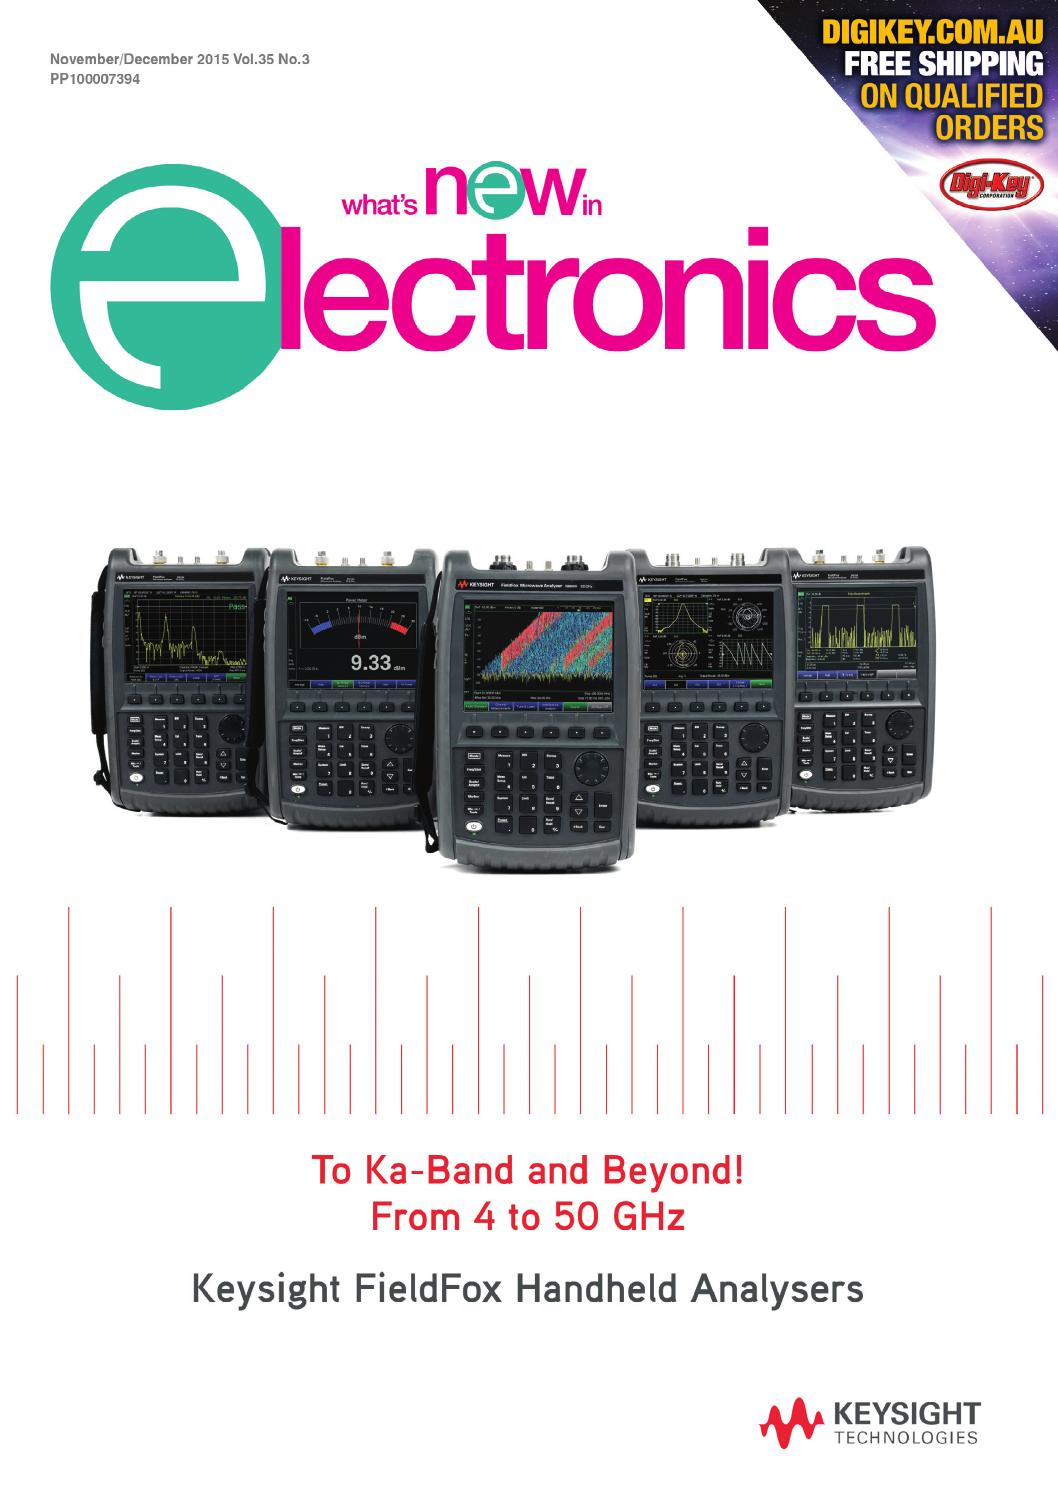 Audio Spectrum Analyzer Circuit Led 03 120x120 Whats New In Electronics Nov Dec 2015 By Westwick Farrow Media Issuu